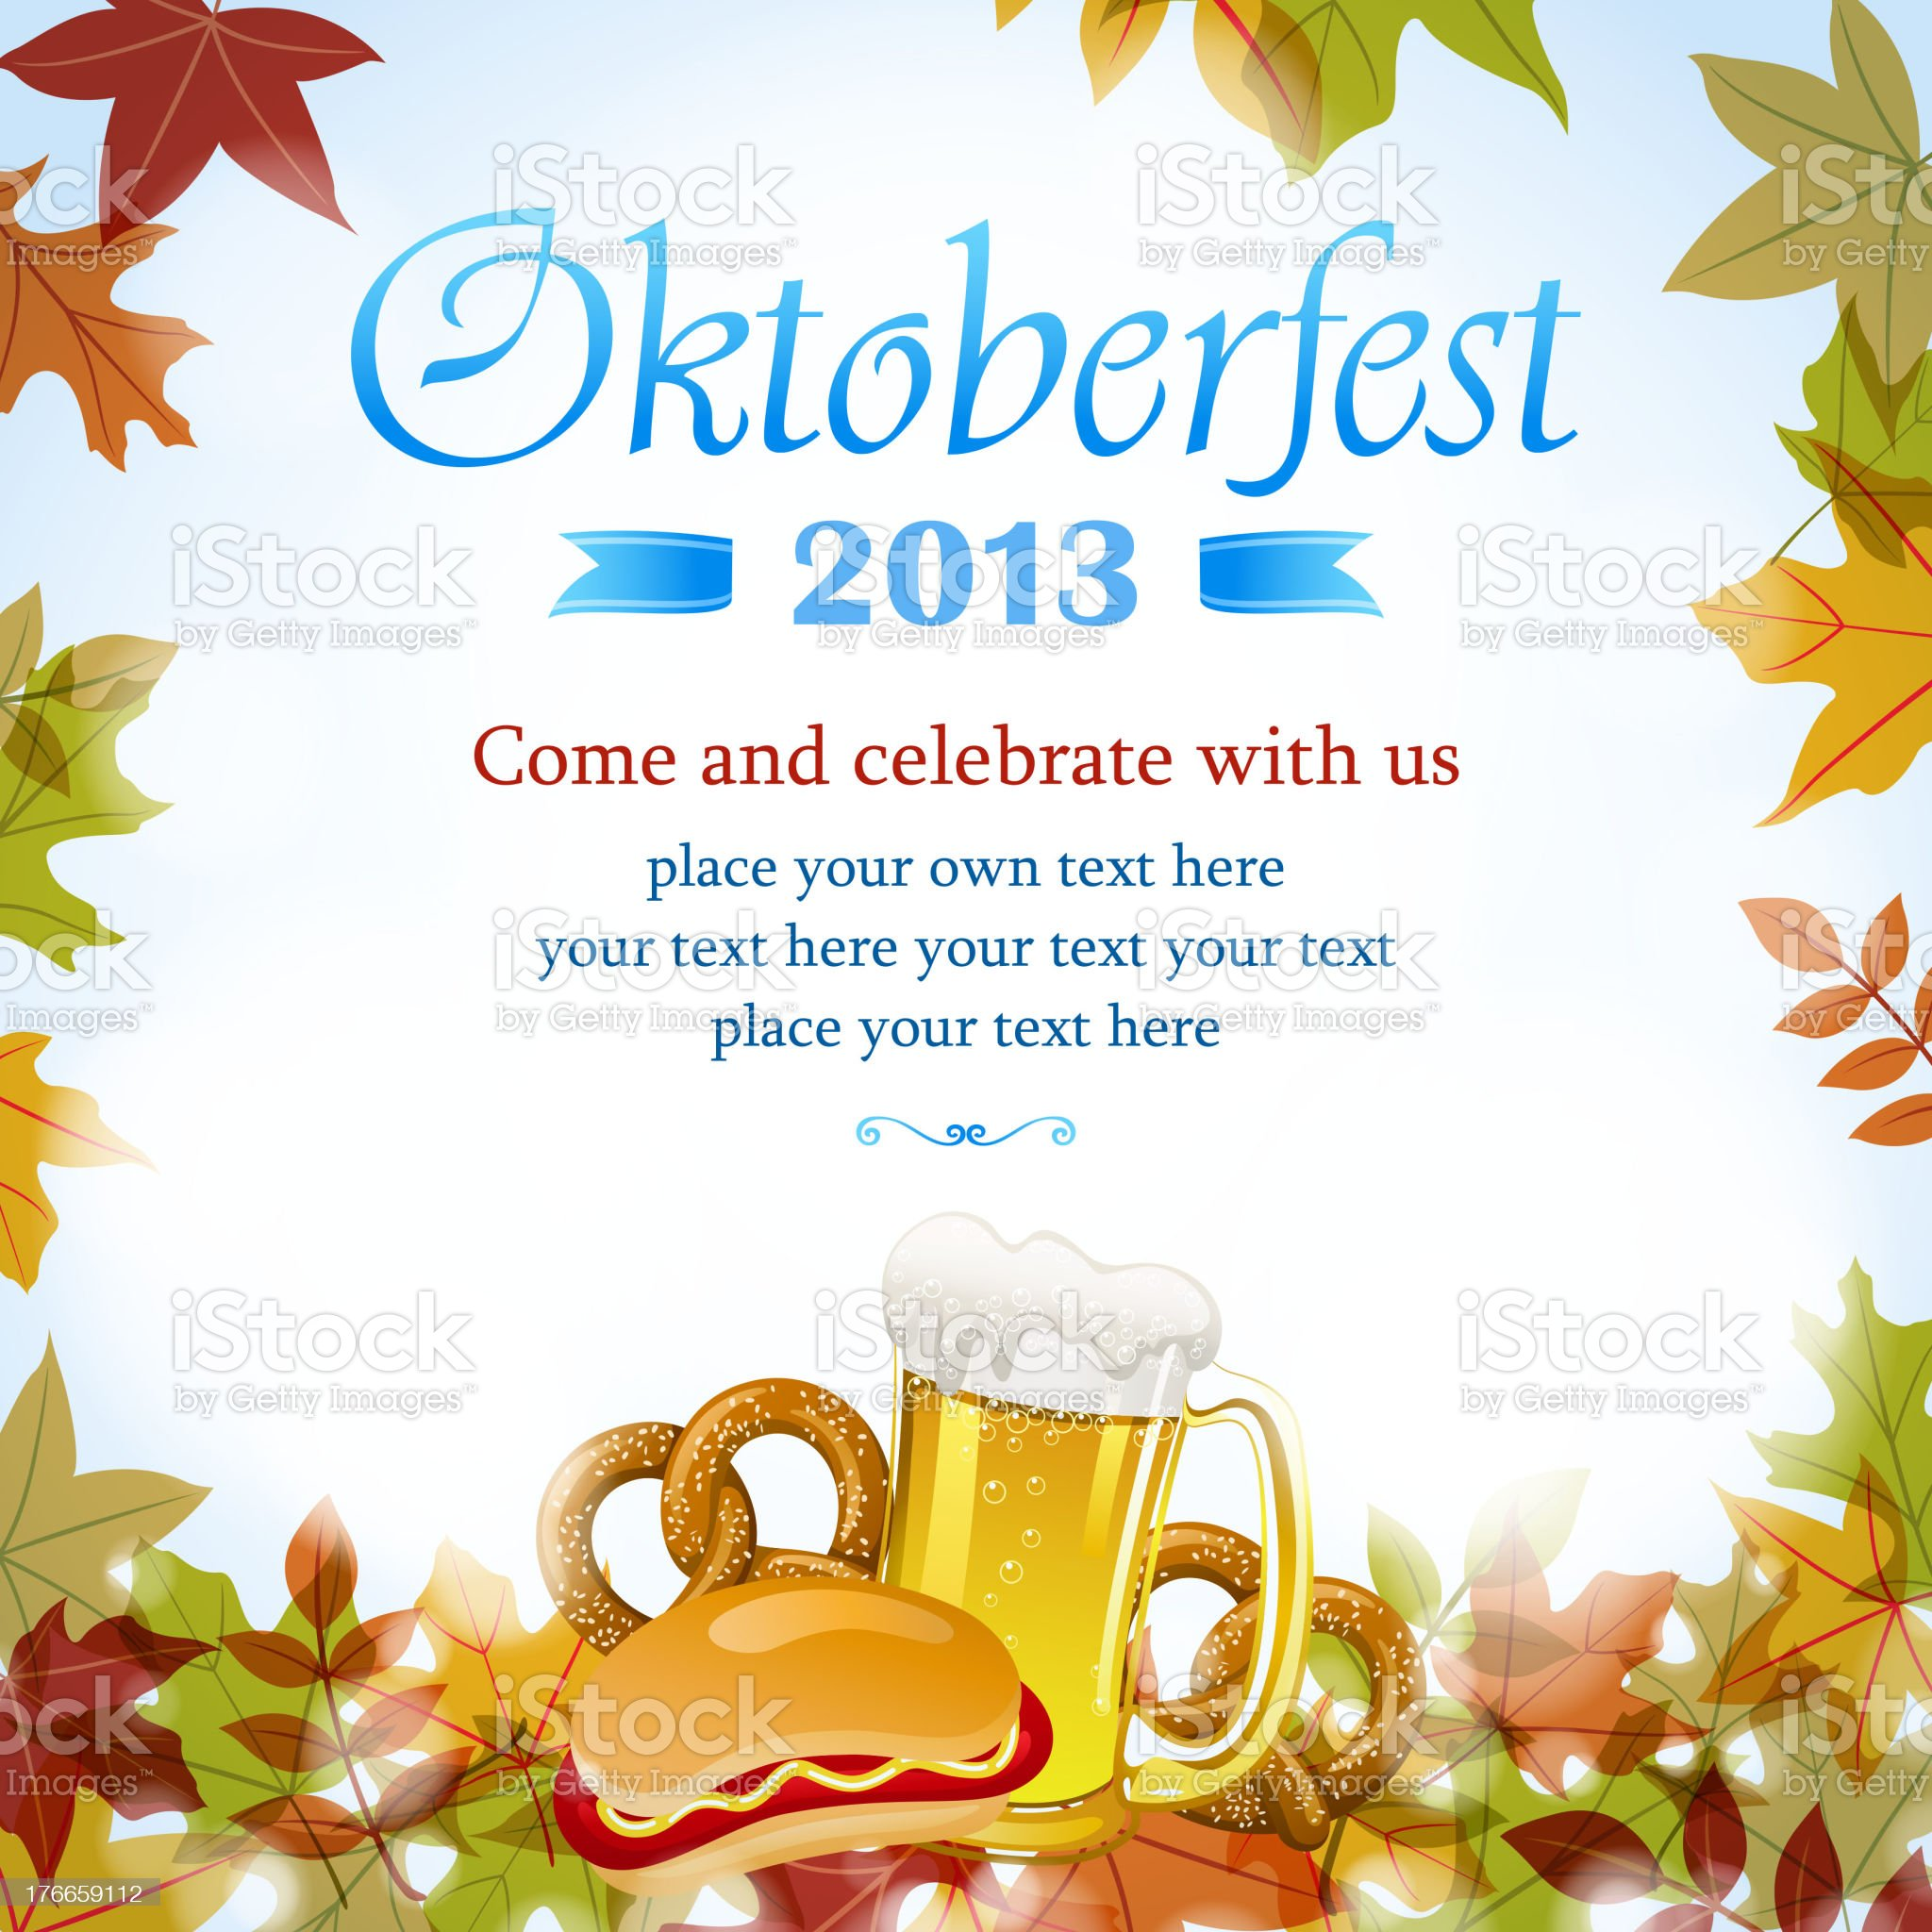 Celebrate Oktoberfest royalty-free stock vector art